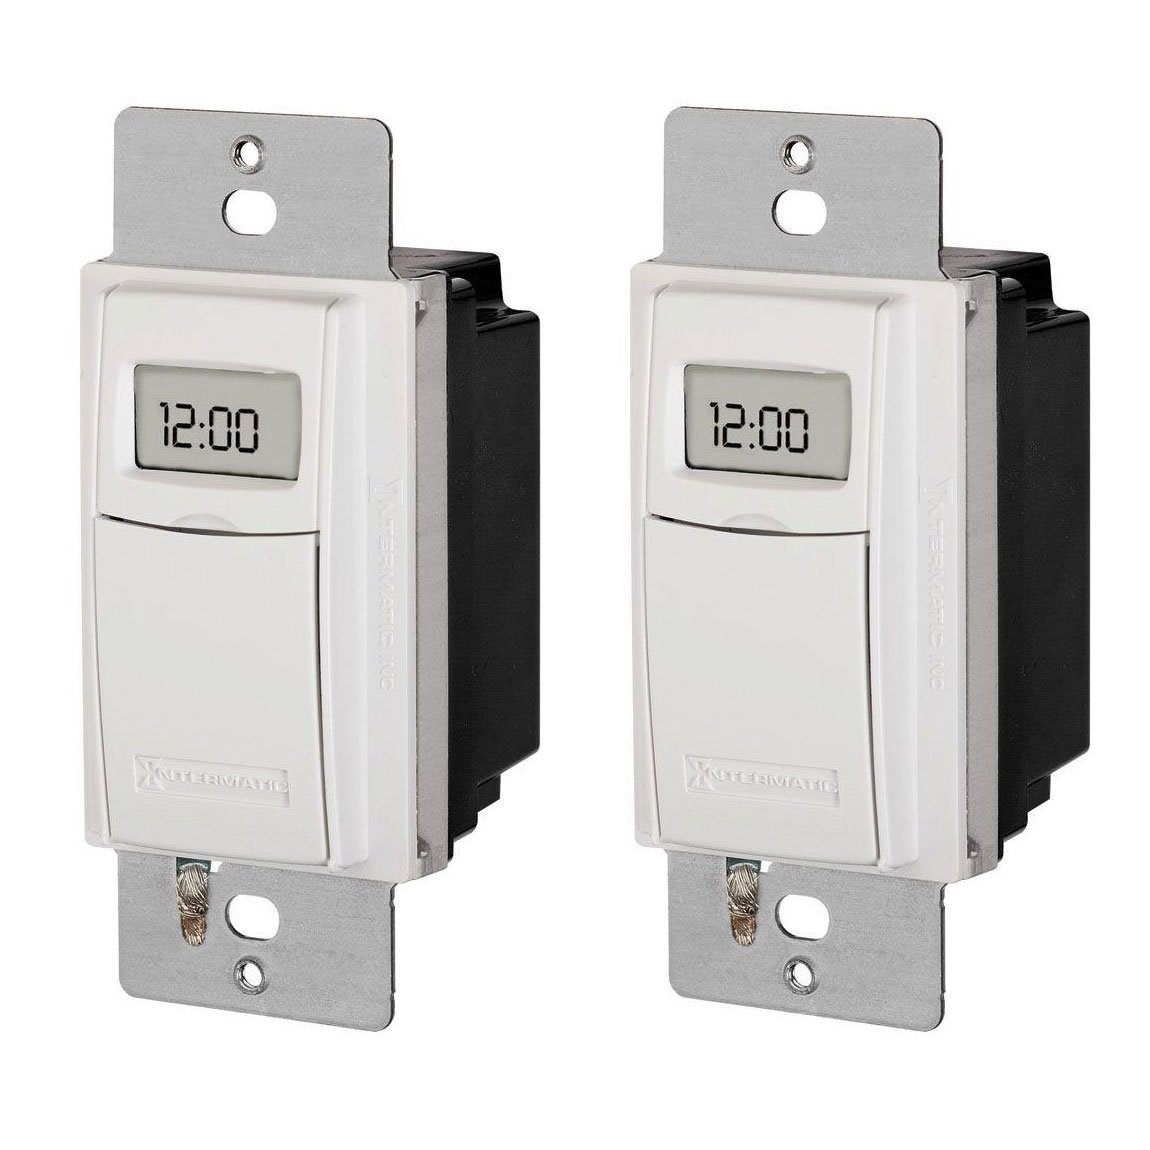 Intermatic ST01K Astronomic 120-277 VAC 15 A 1 HP Digital In-Wall Timers, 2-Pack